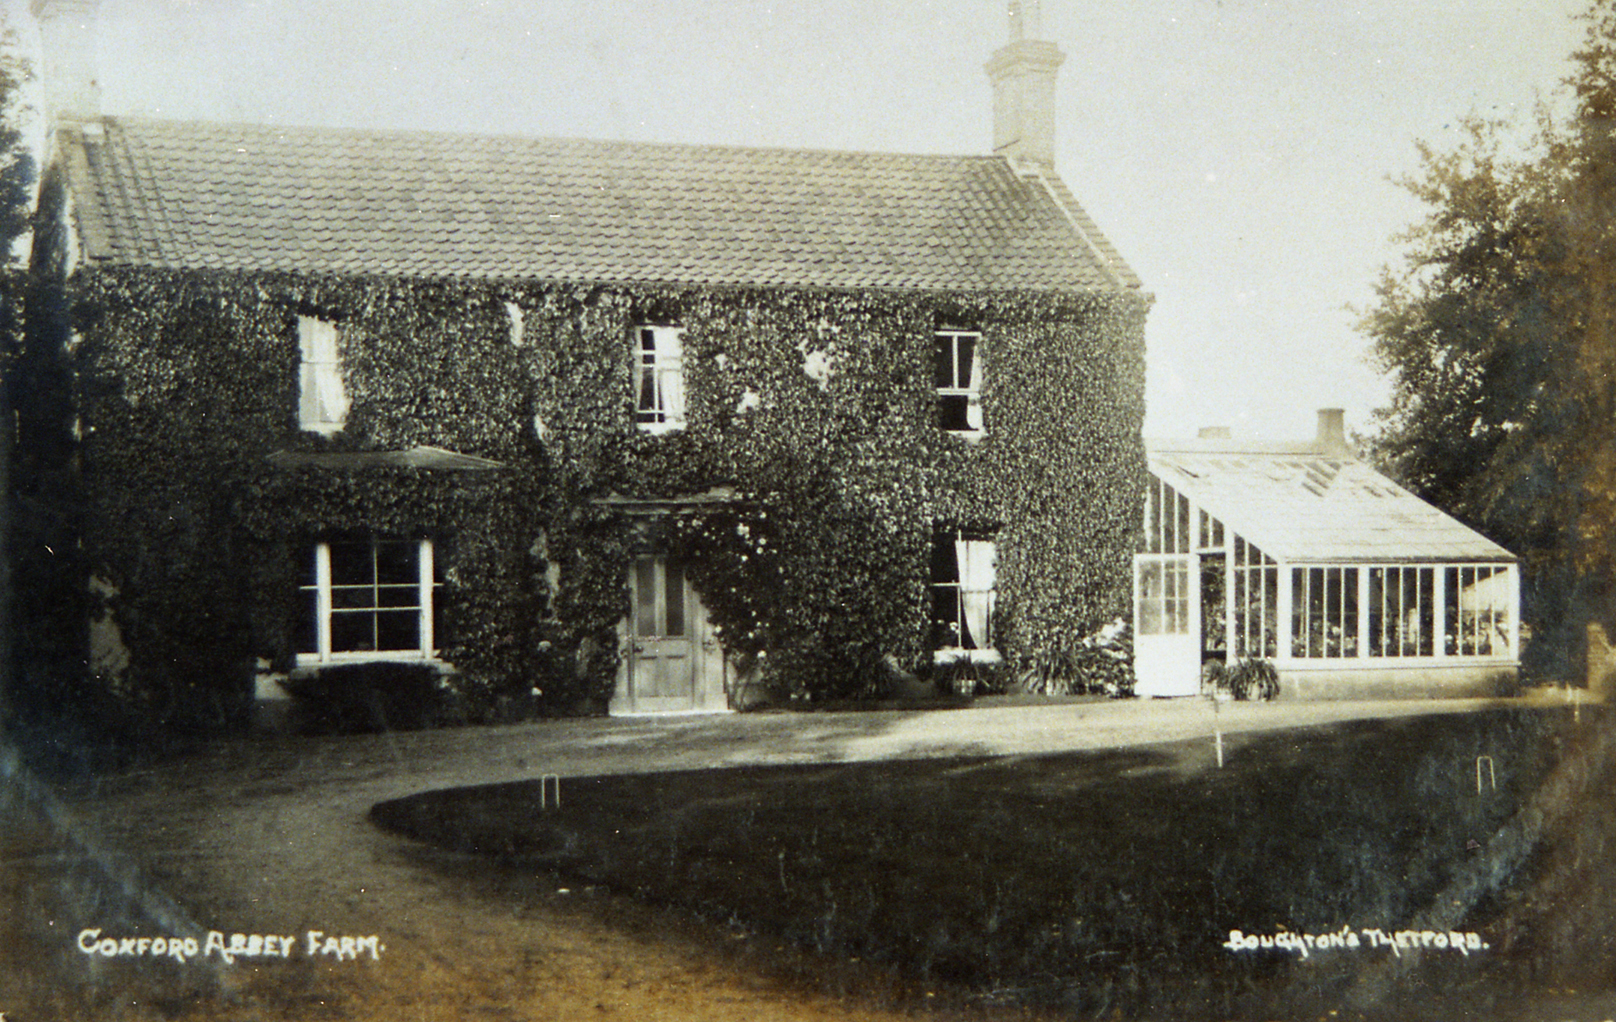 Seppings_Robert and Mary_Coxford Abbey Farm_Kings Lynn_Nth Norfolk_1712 s